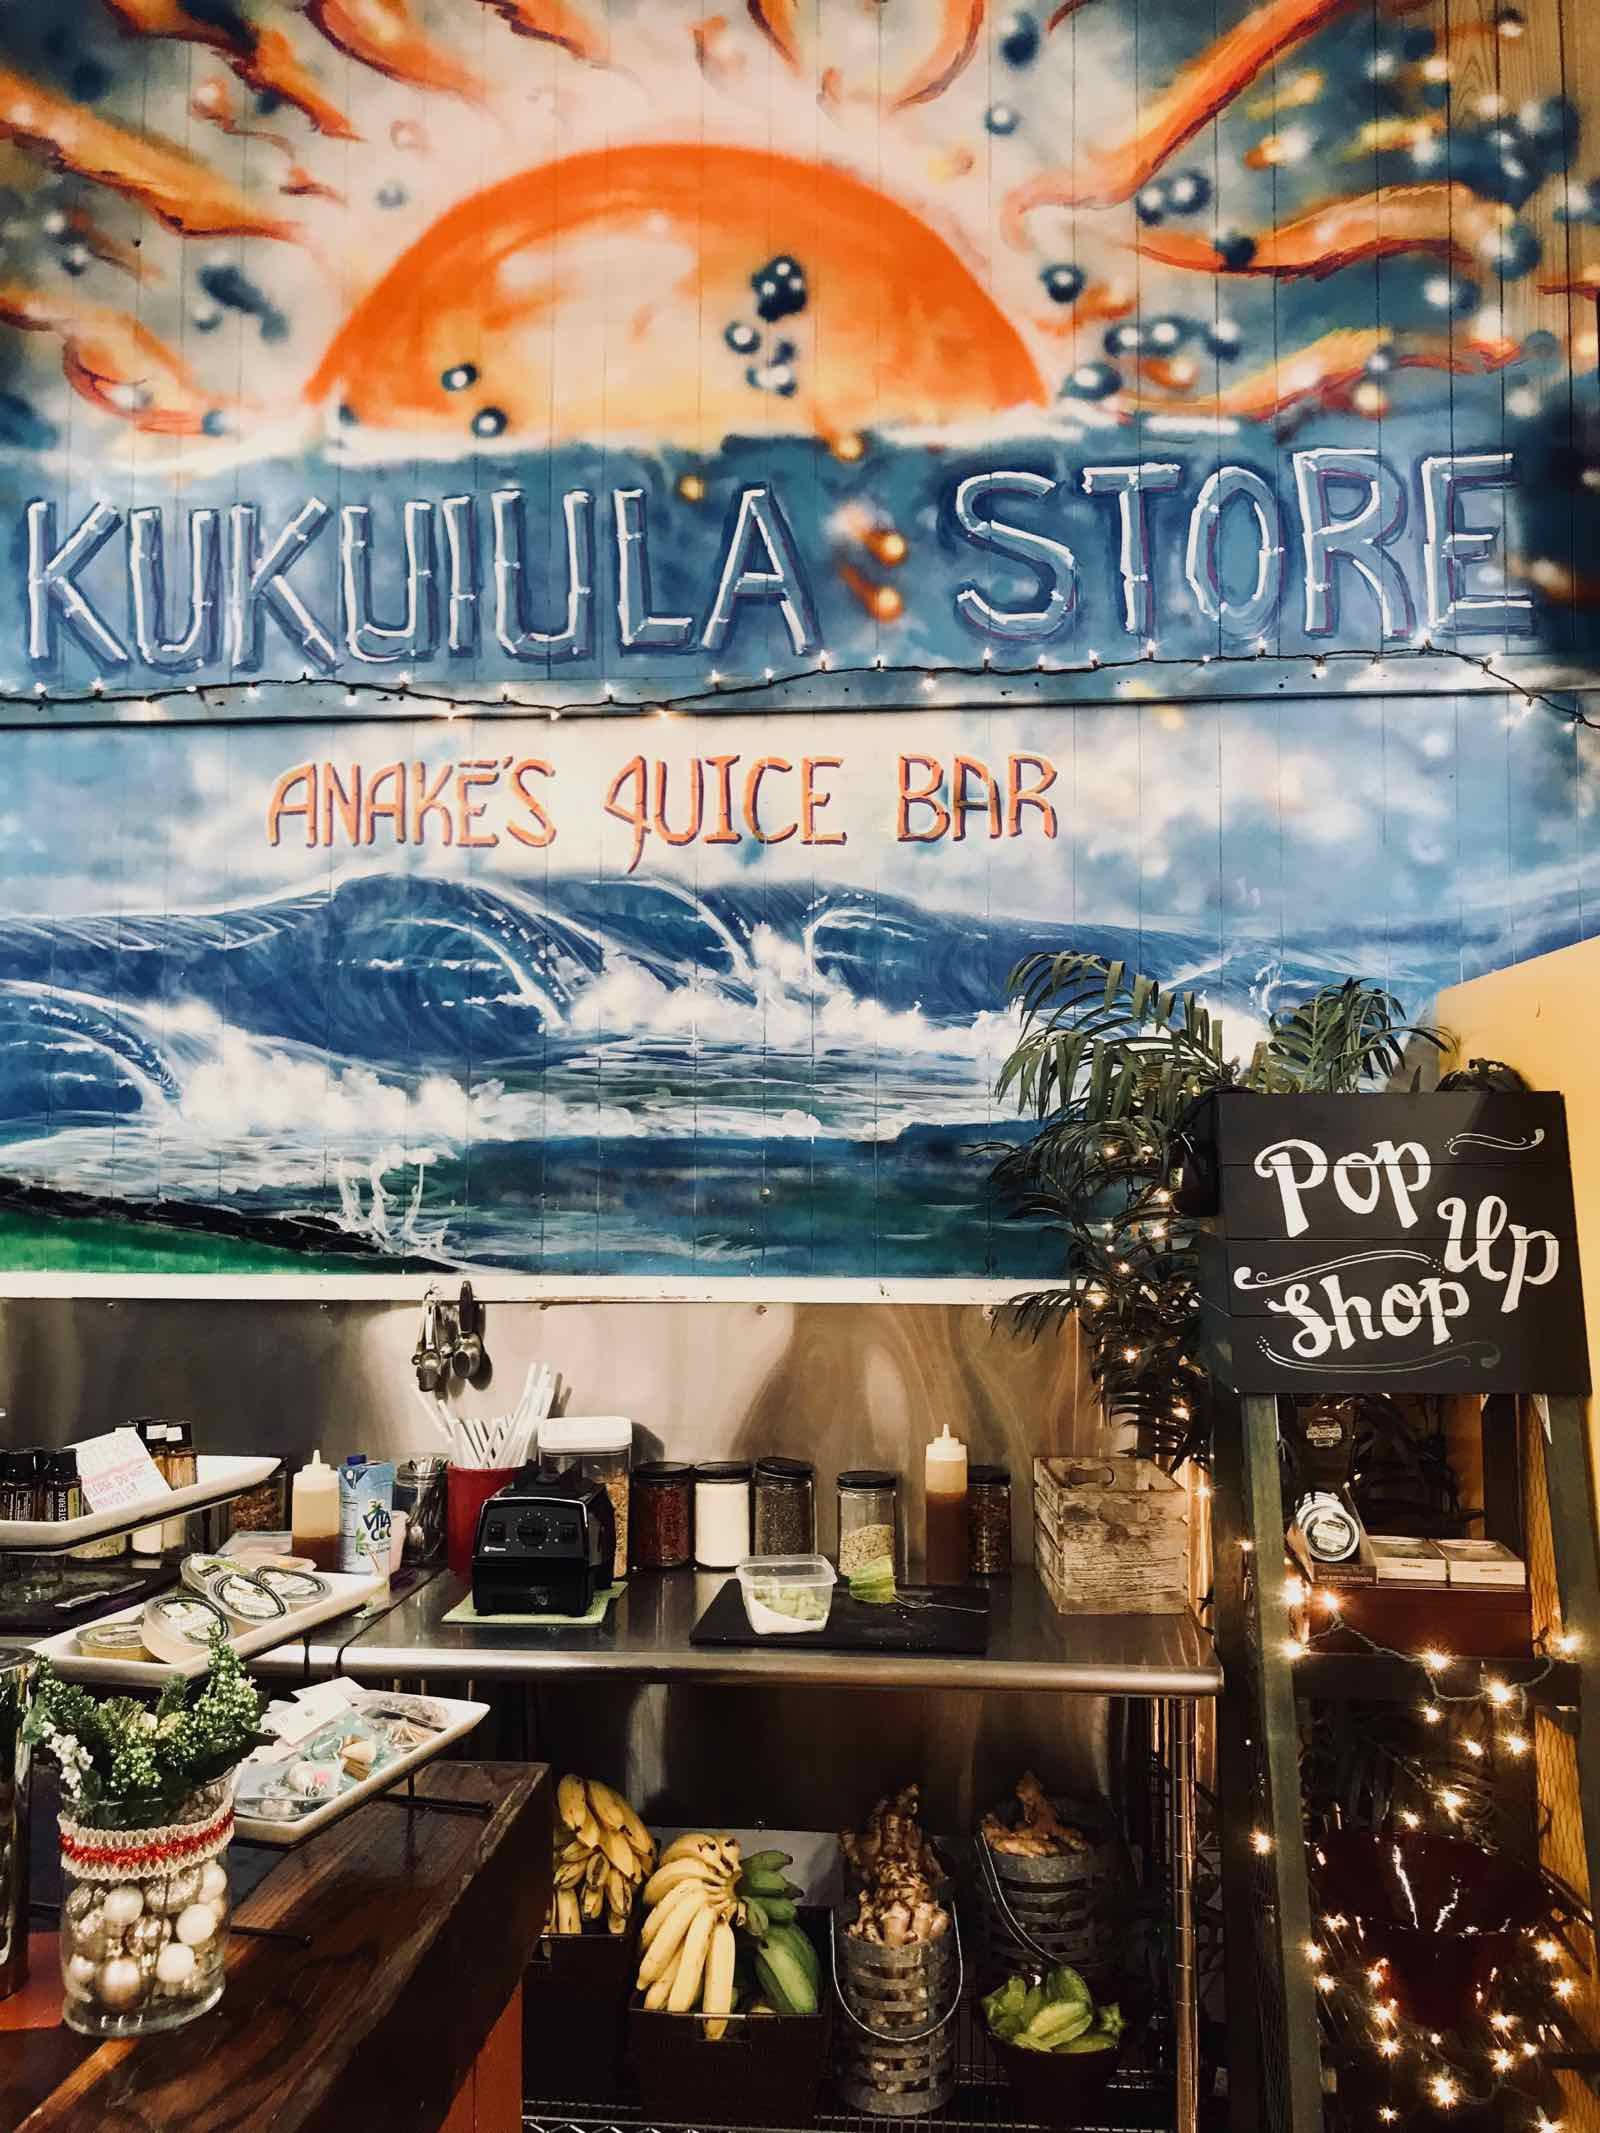 Anake's-Juice-Bar-Kauai-Hawaii-2.jpg